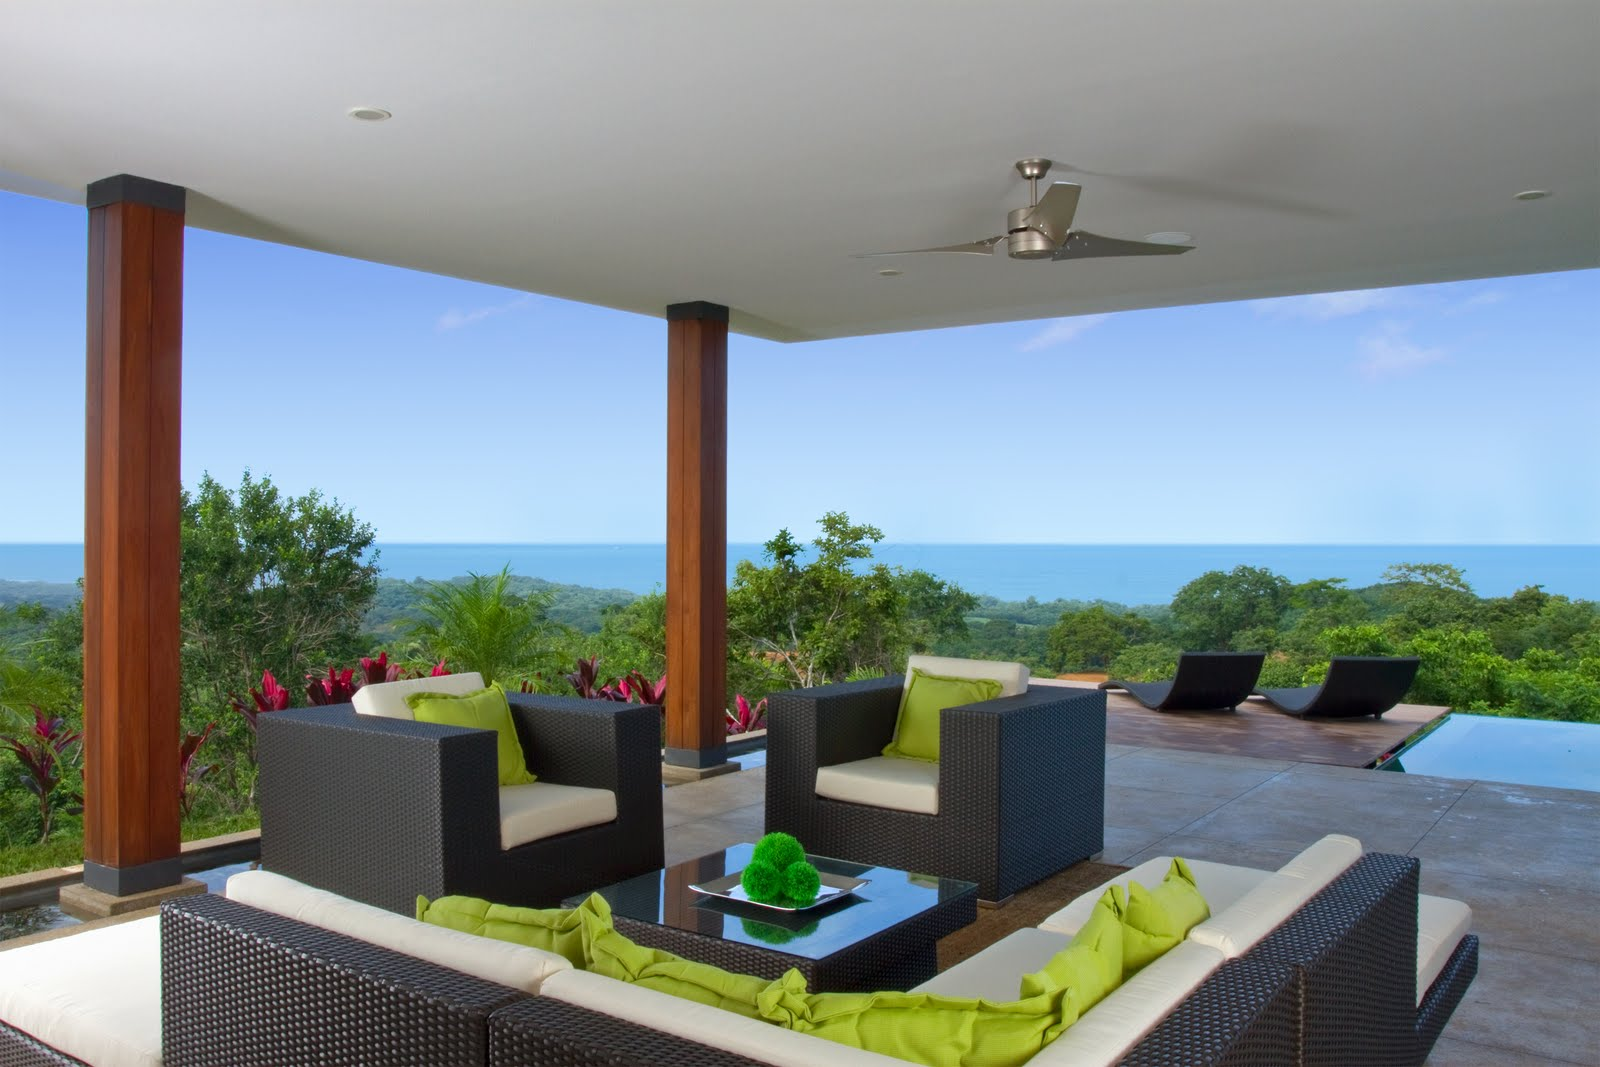 Jet luxury resorts costa rica luxury vacation rental for Luxury rental costa rica